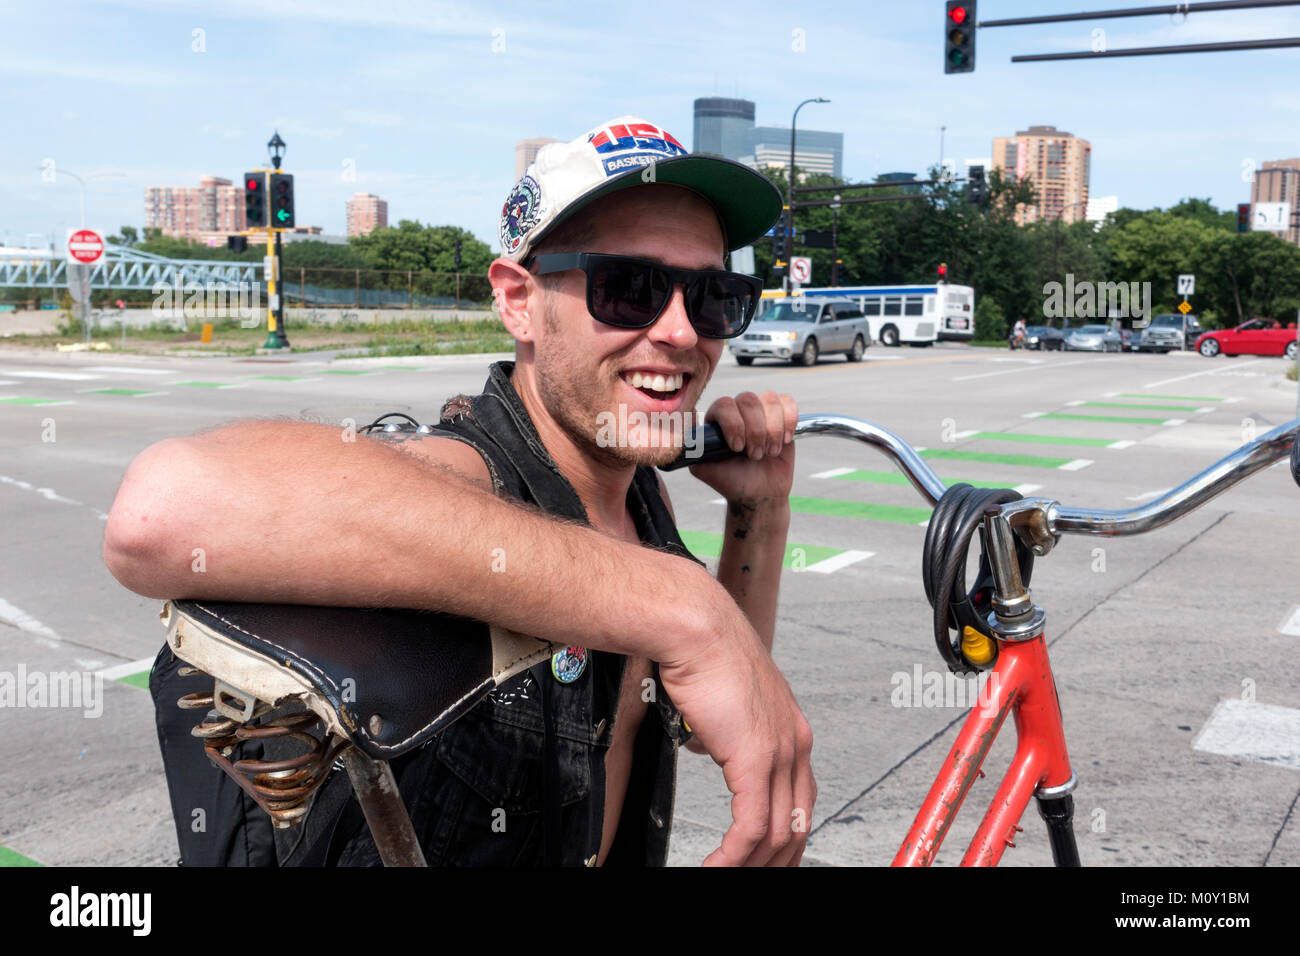 Happy-go-lucky inventor of a double-decker style bicycle Minneapolis Minnesota MN USA - Stock Image